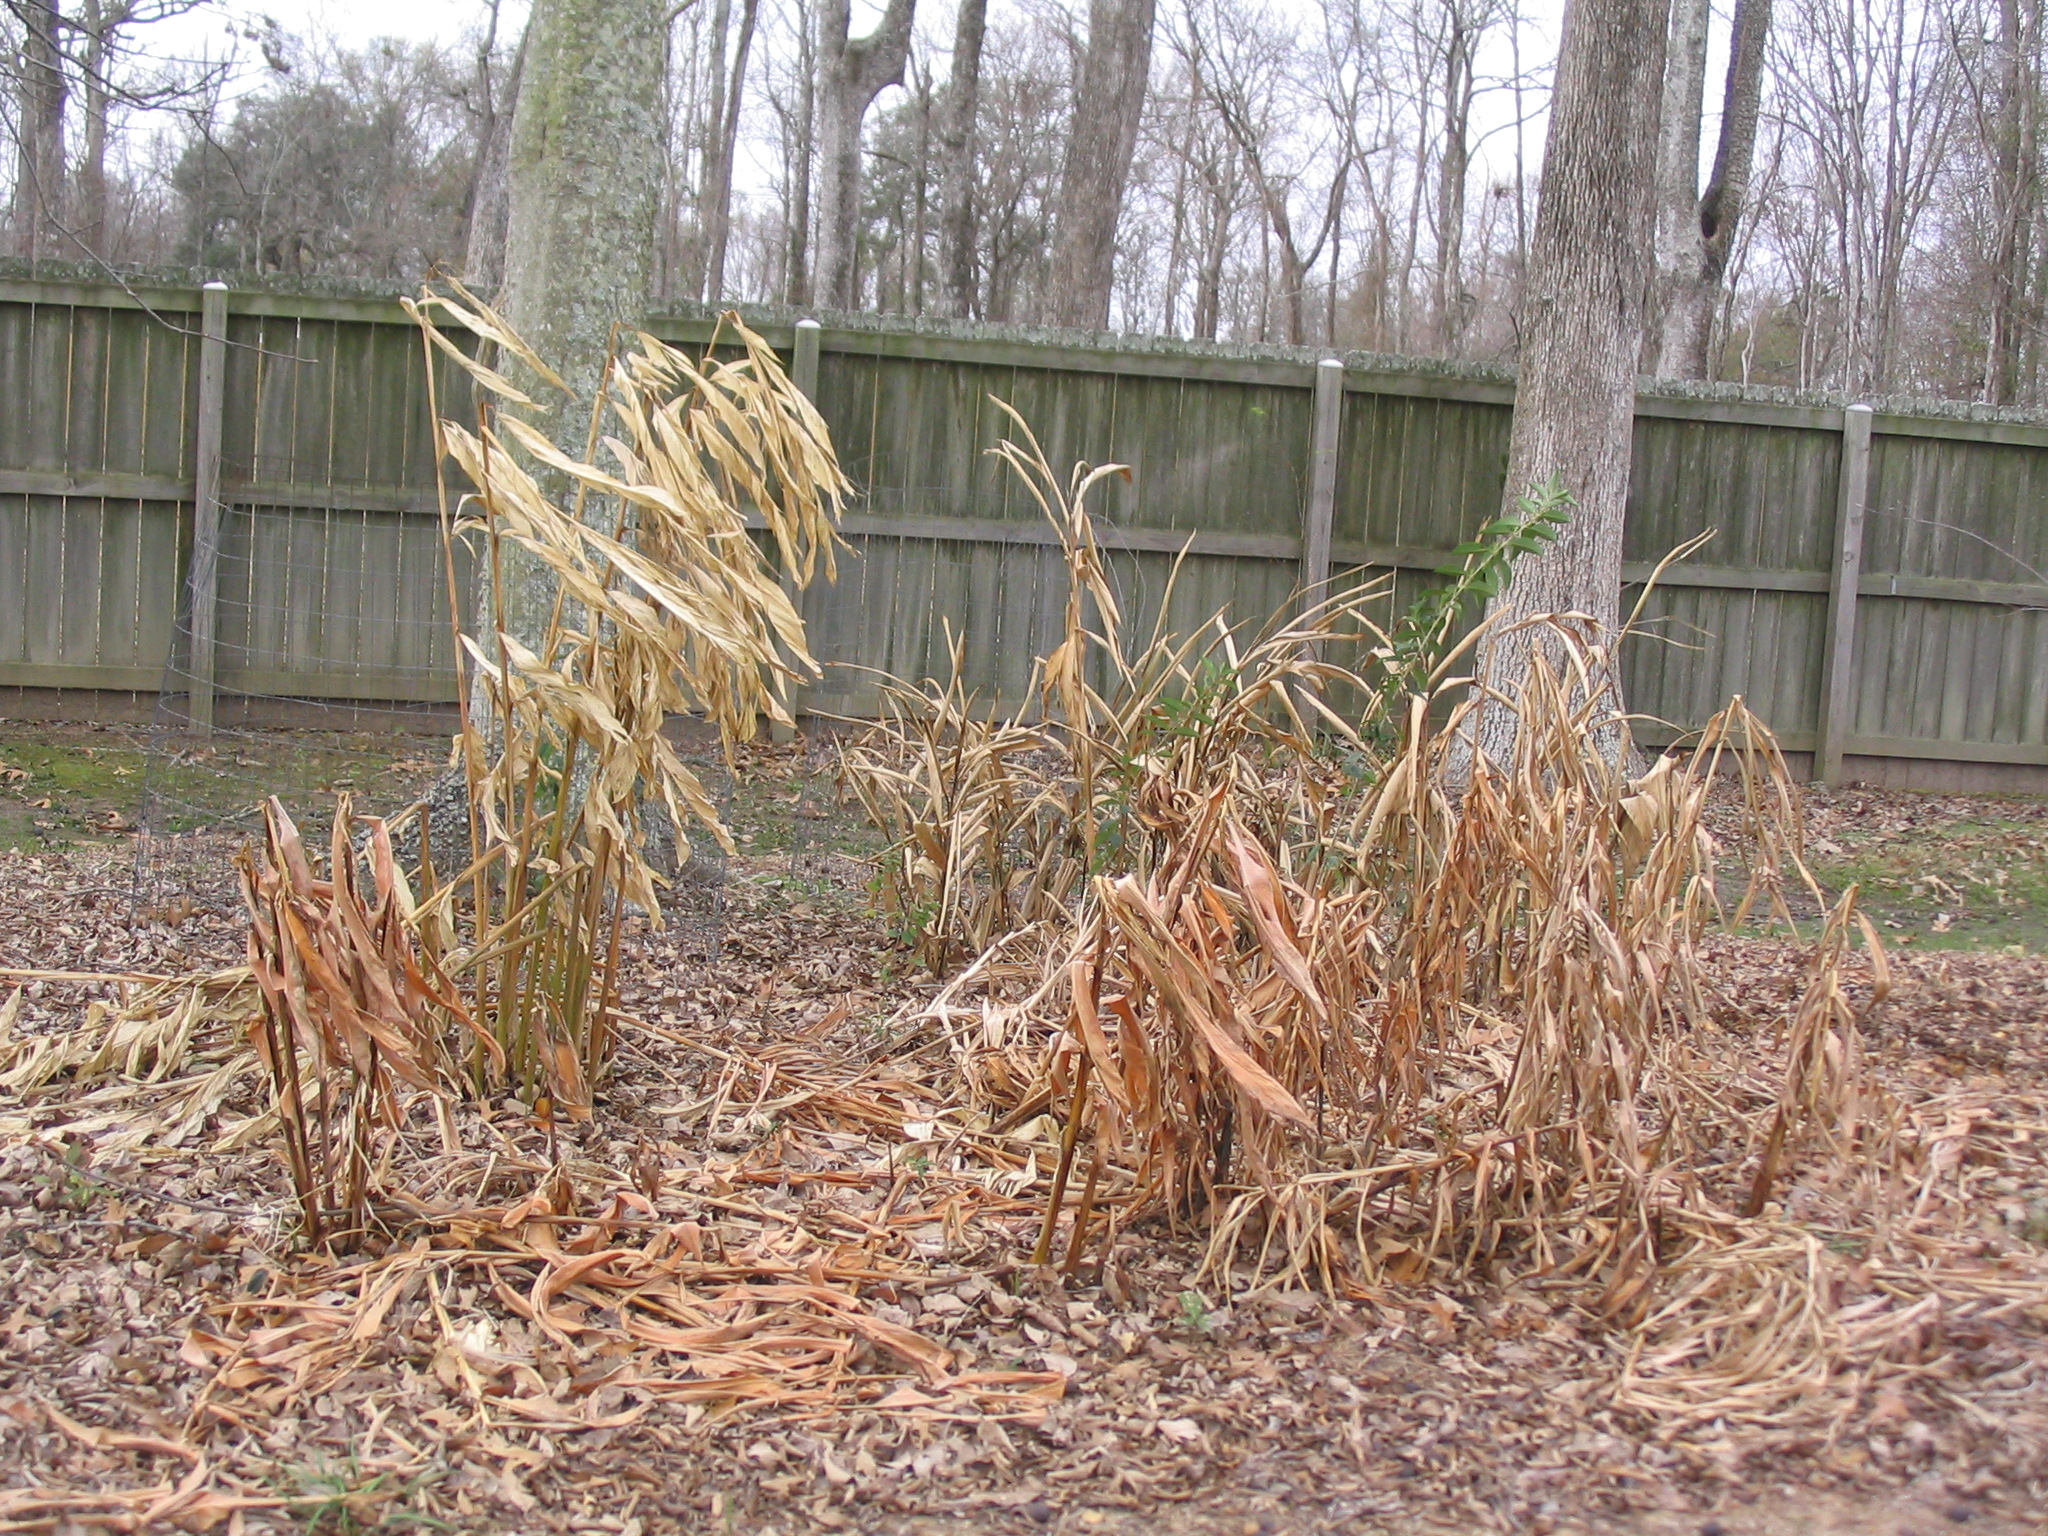 Herbaceous plants - like gingers - can be cut back a few days after a killing freeze. Photo by Dan Gill